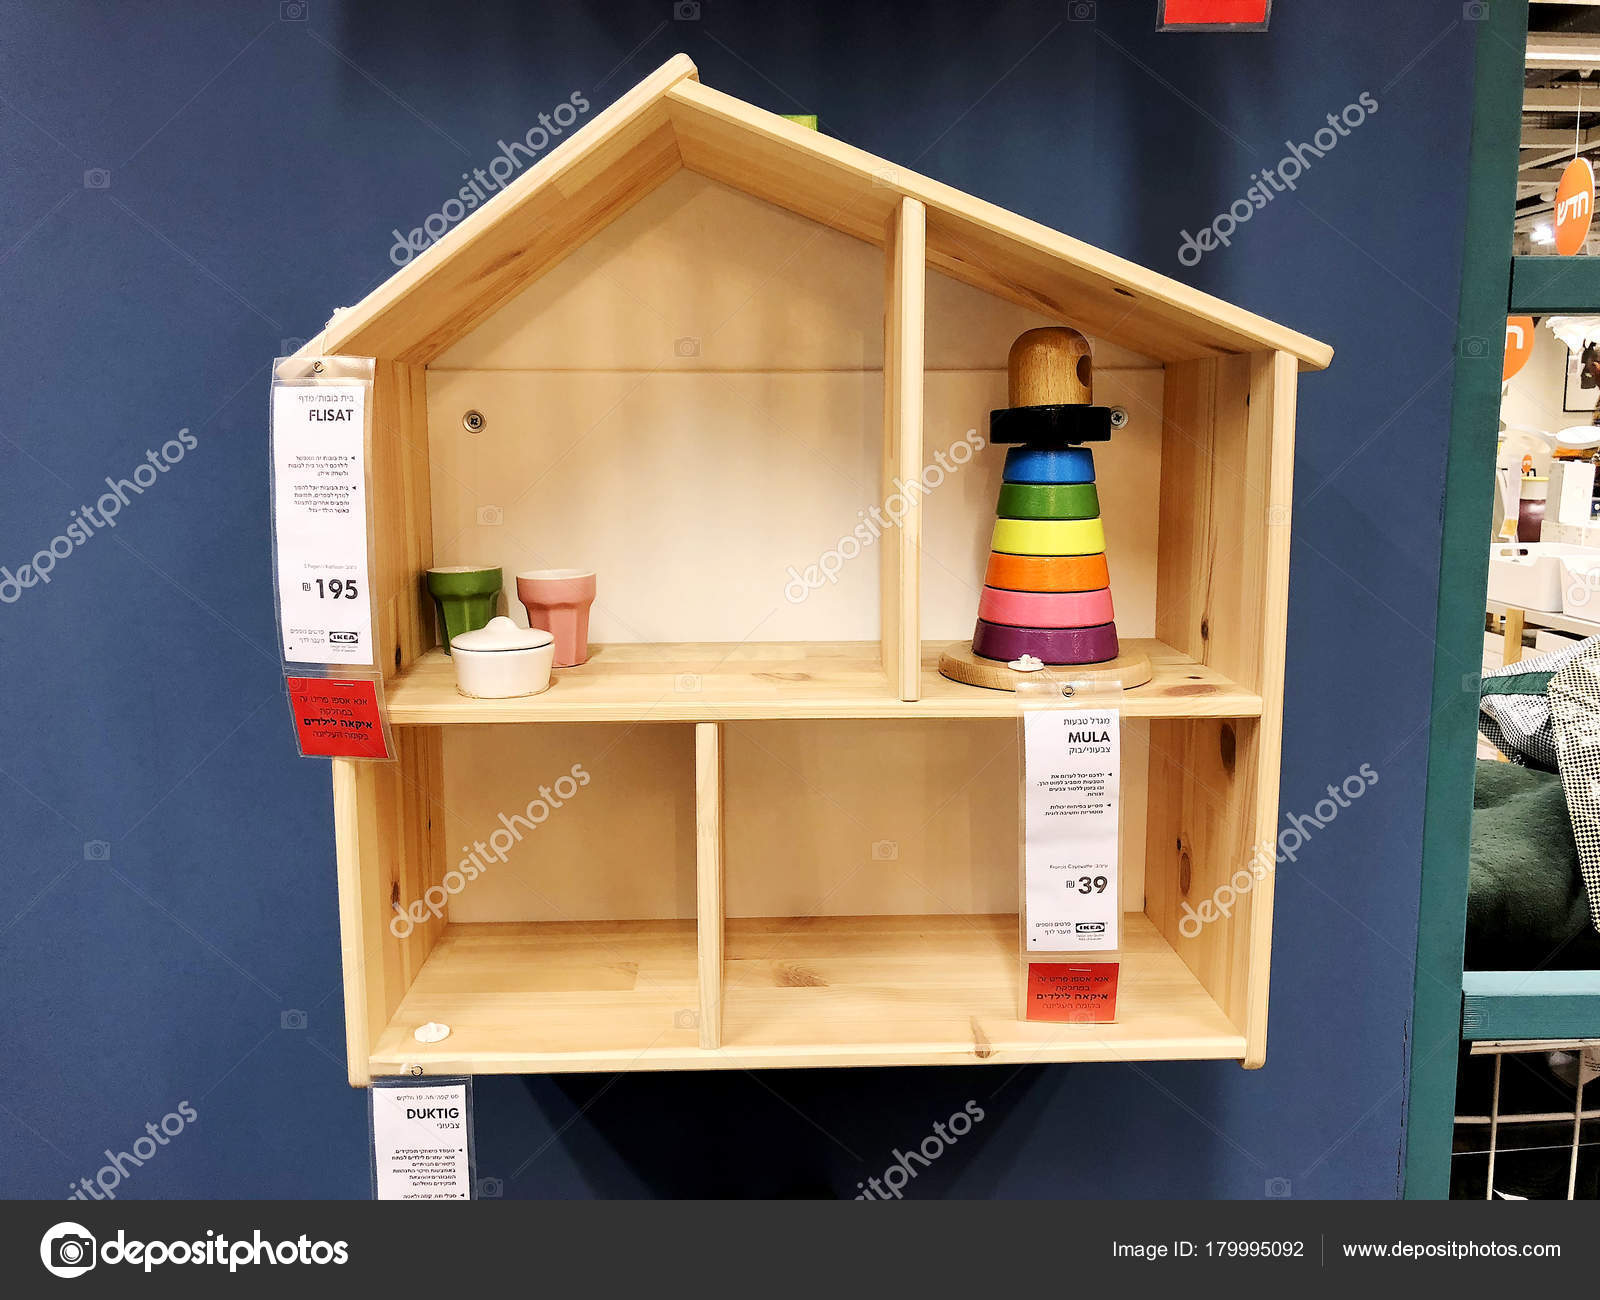 RISHON LE ZION, ISRAEL- DECEMBER 16, 2017: Wooden doll house